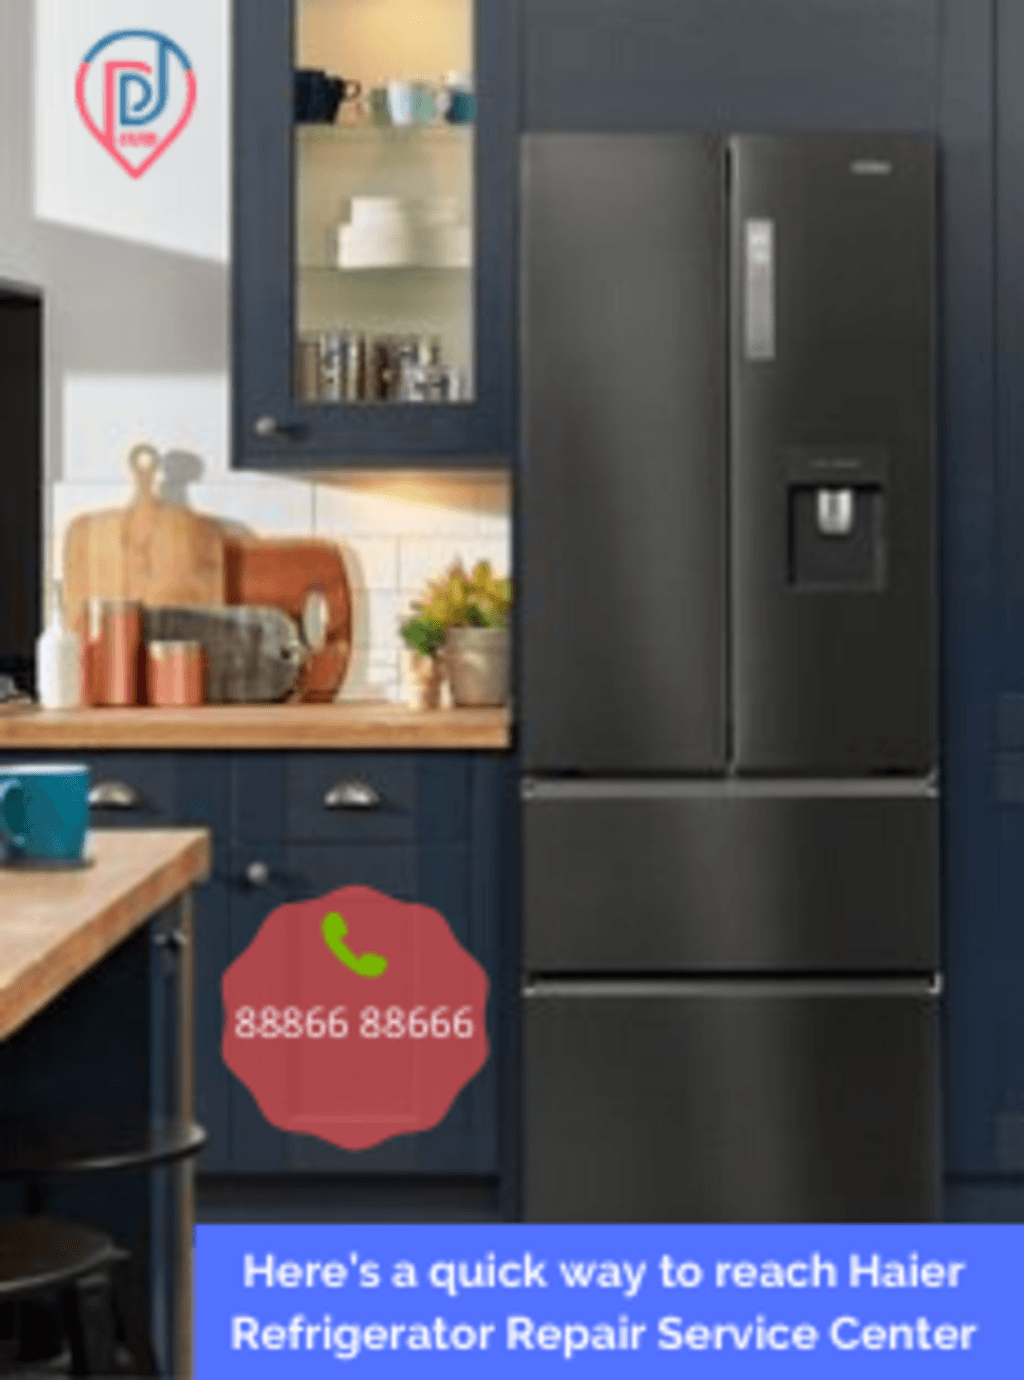 Here's a quick way to reach Haier Refrigerator Repair Servic... via doorstep